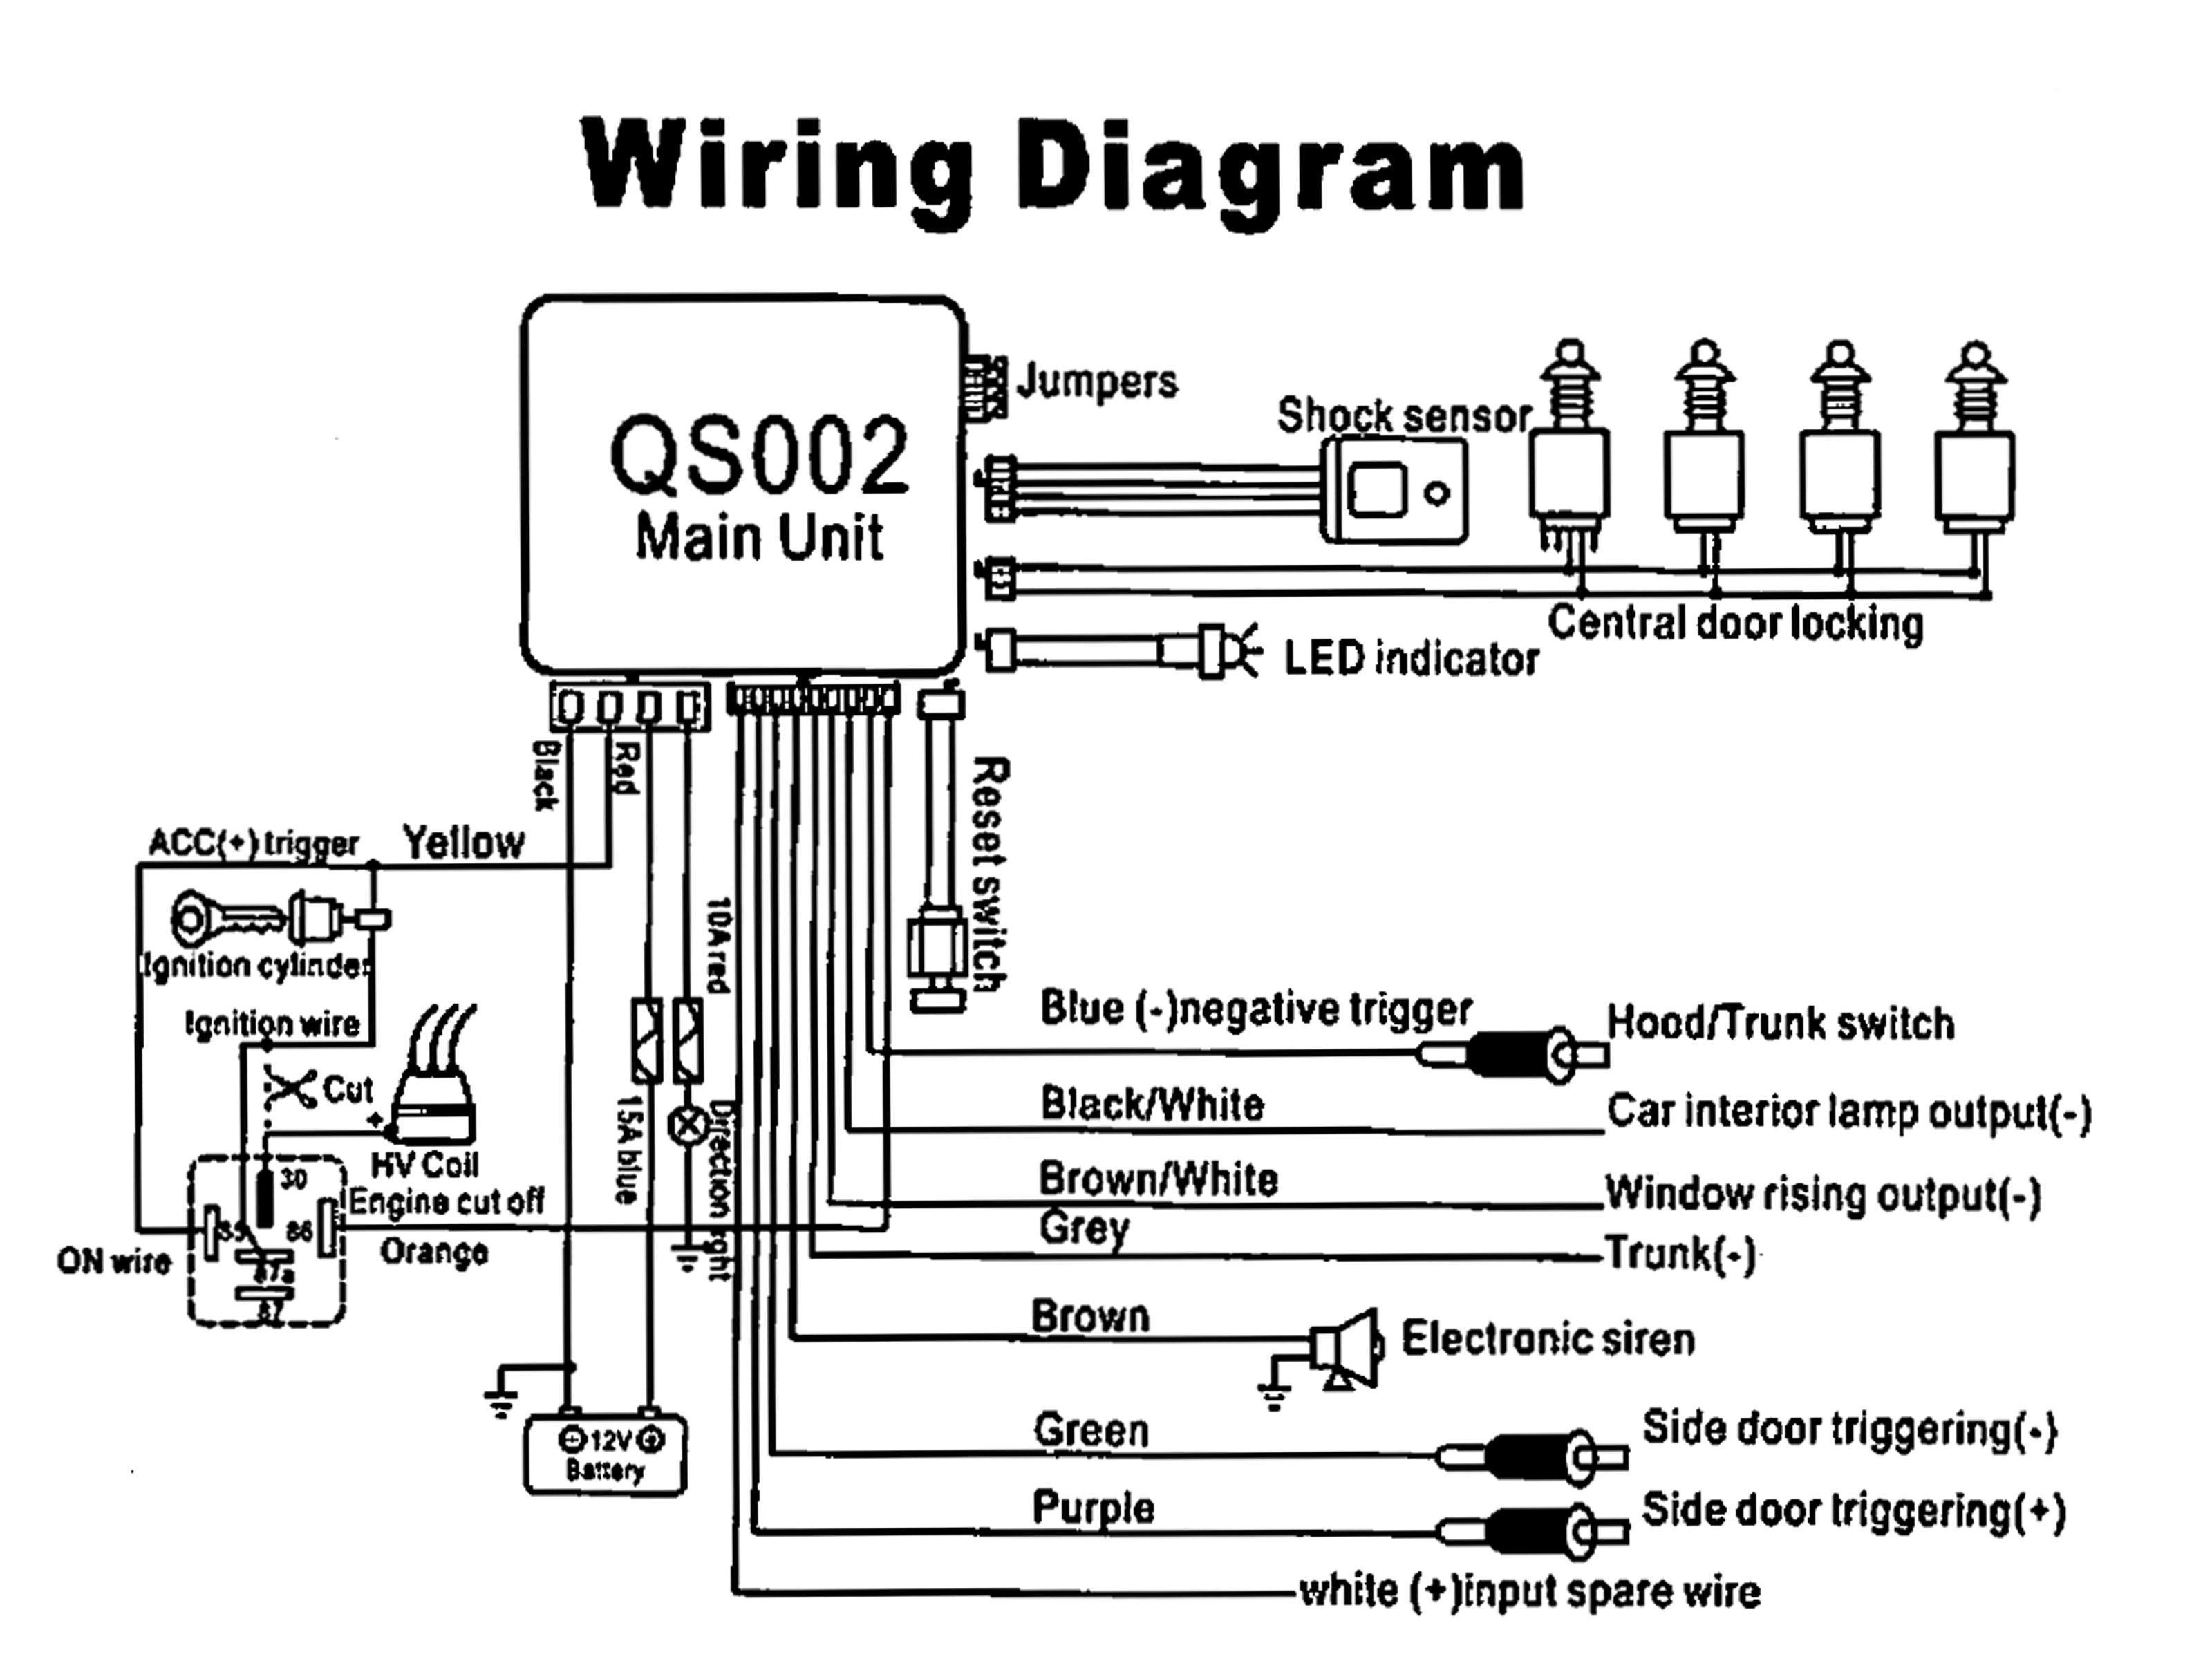 car alarm wiring diagram download. Black Bedroom Furniture Sets. Home Design Ideas